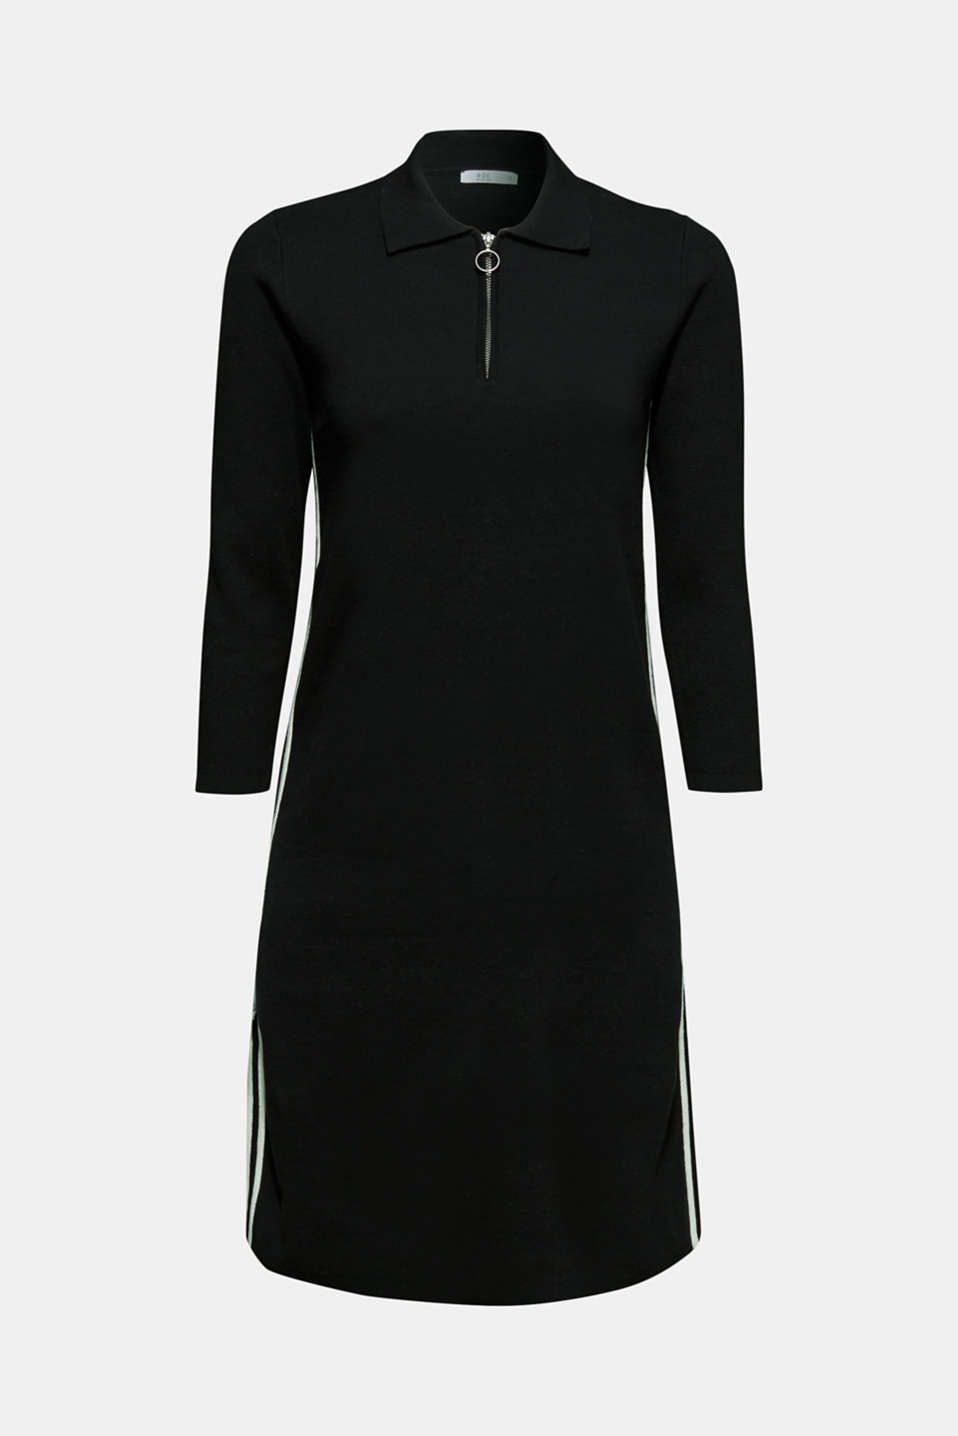 Polo knit dress with racing stripes, BLACK 2, detail image number 6